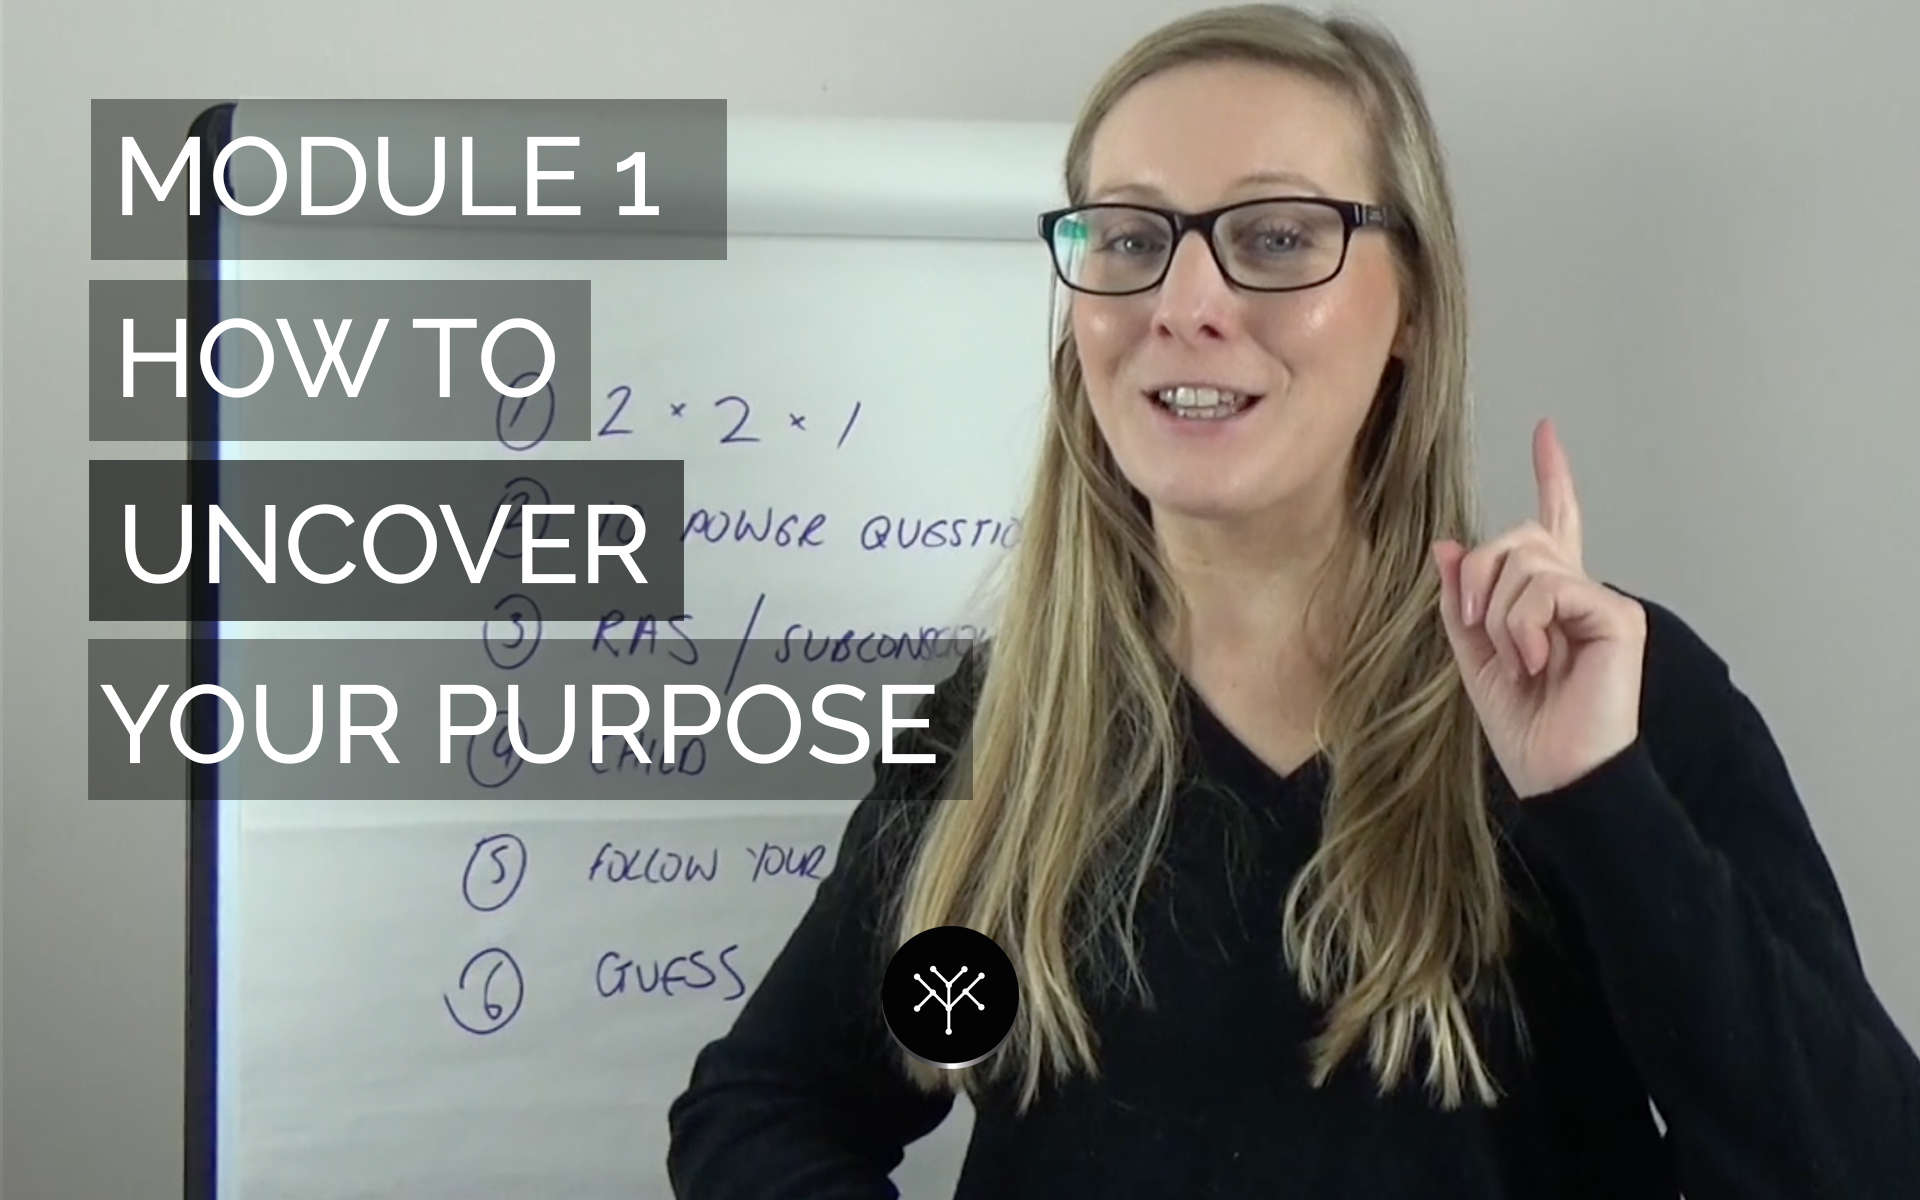 How to uncover your purpose